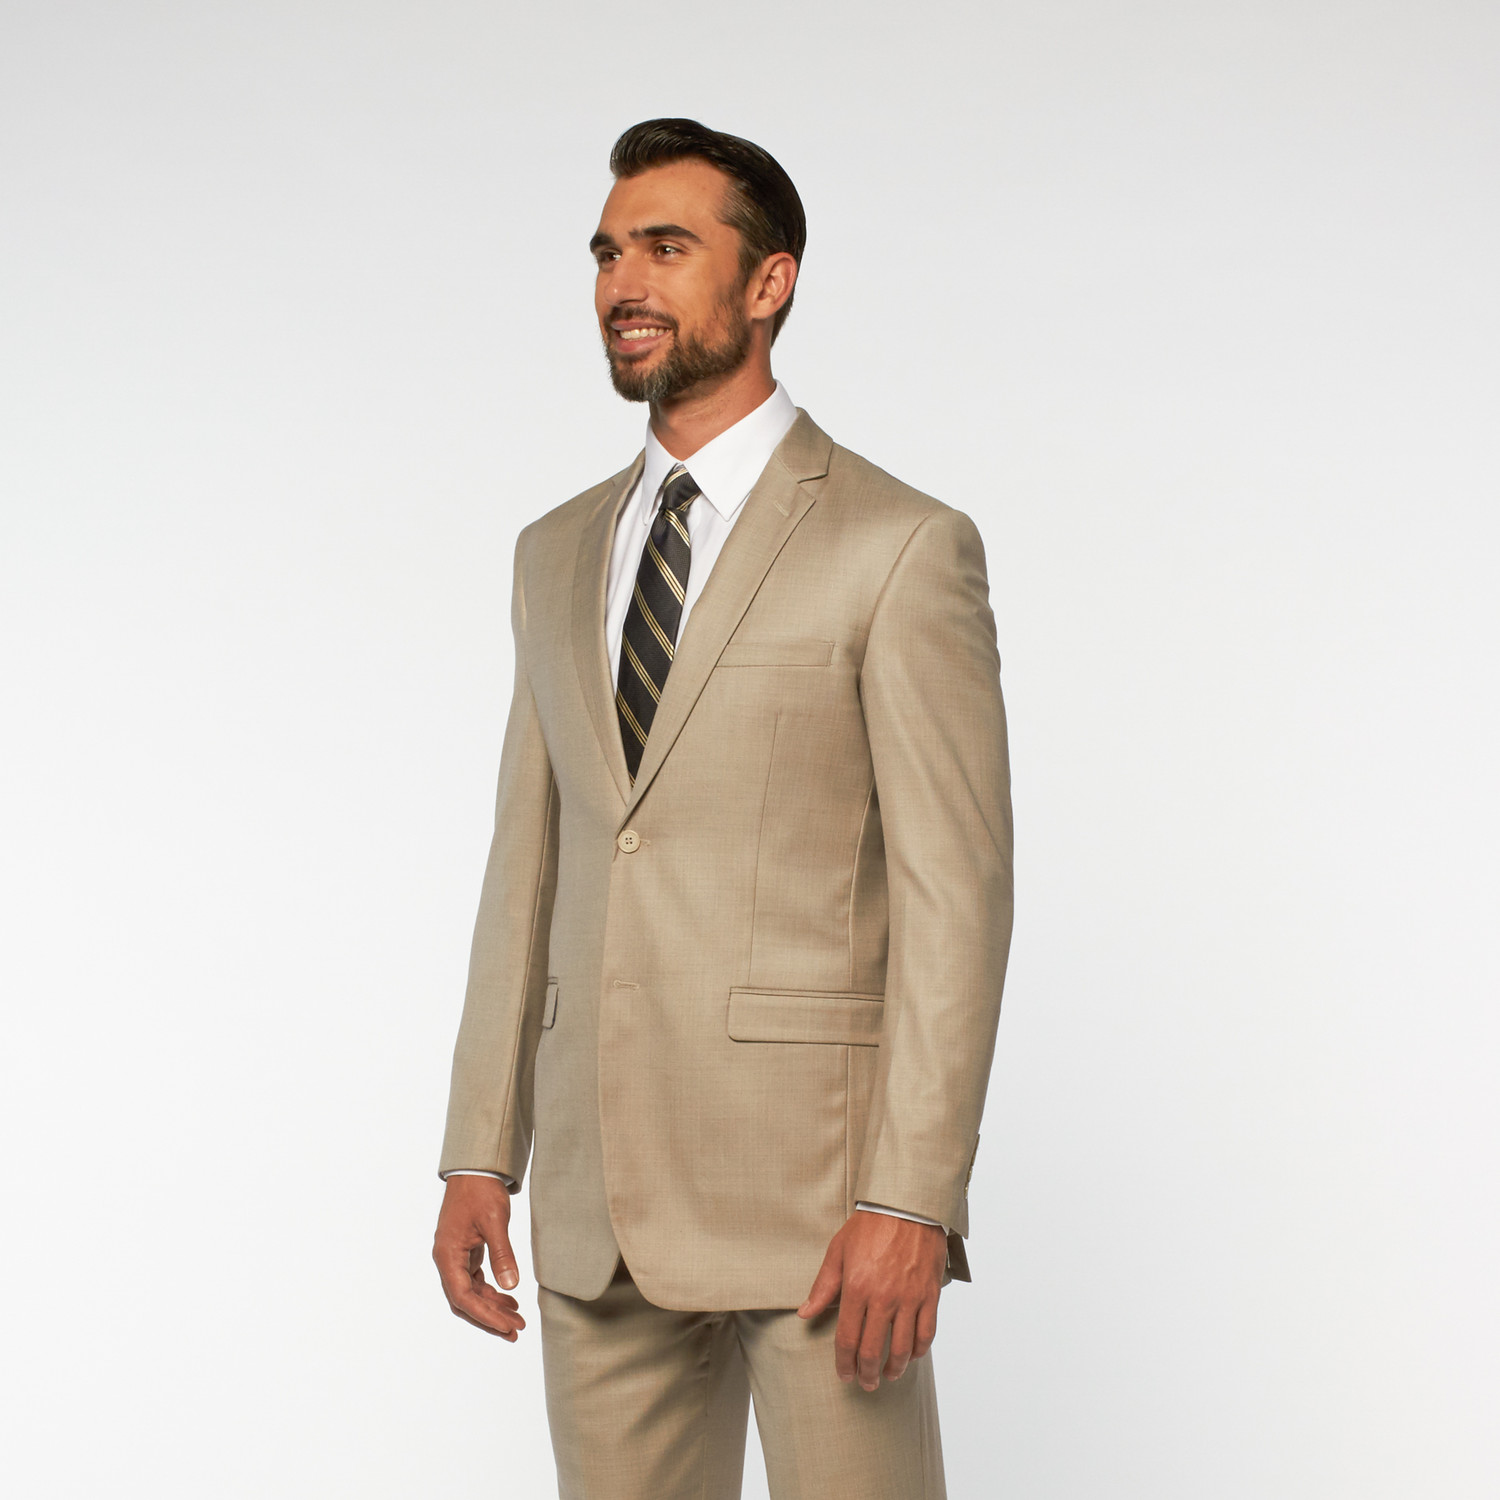 Eleganza // 2-Piece Slim Fit Suit // Crudo (US: 36S) - Polished